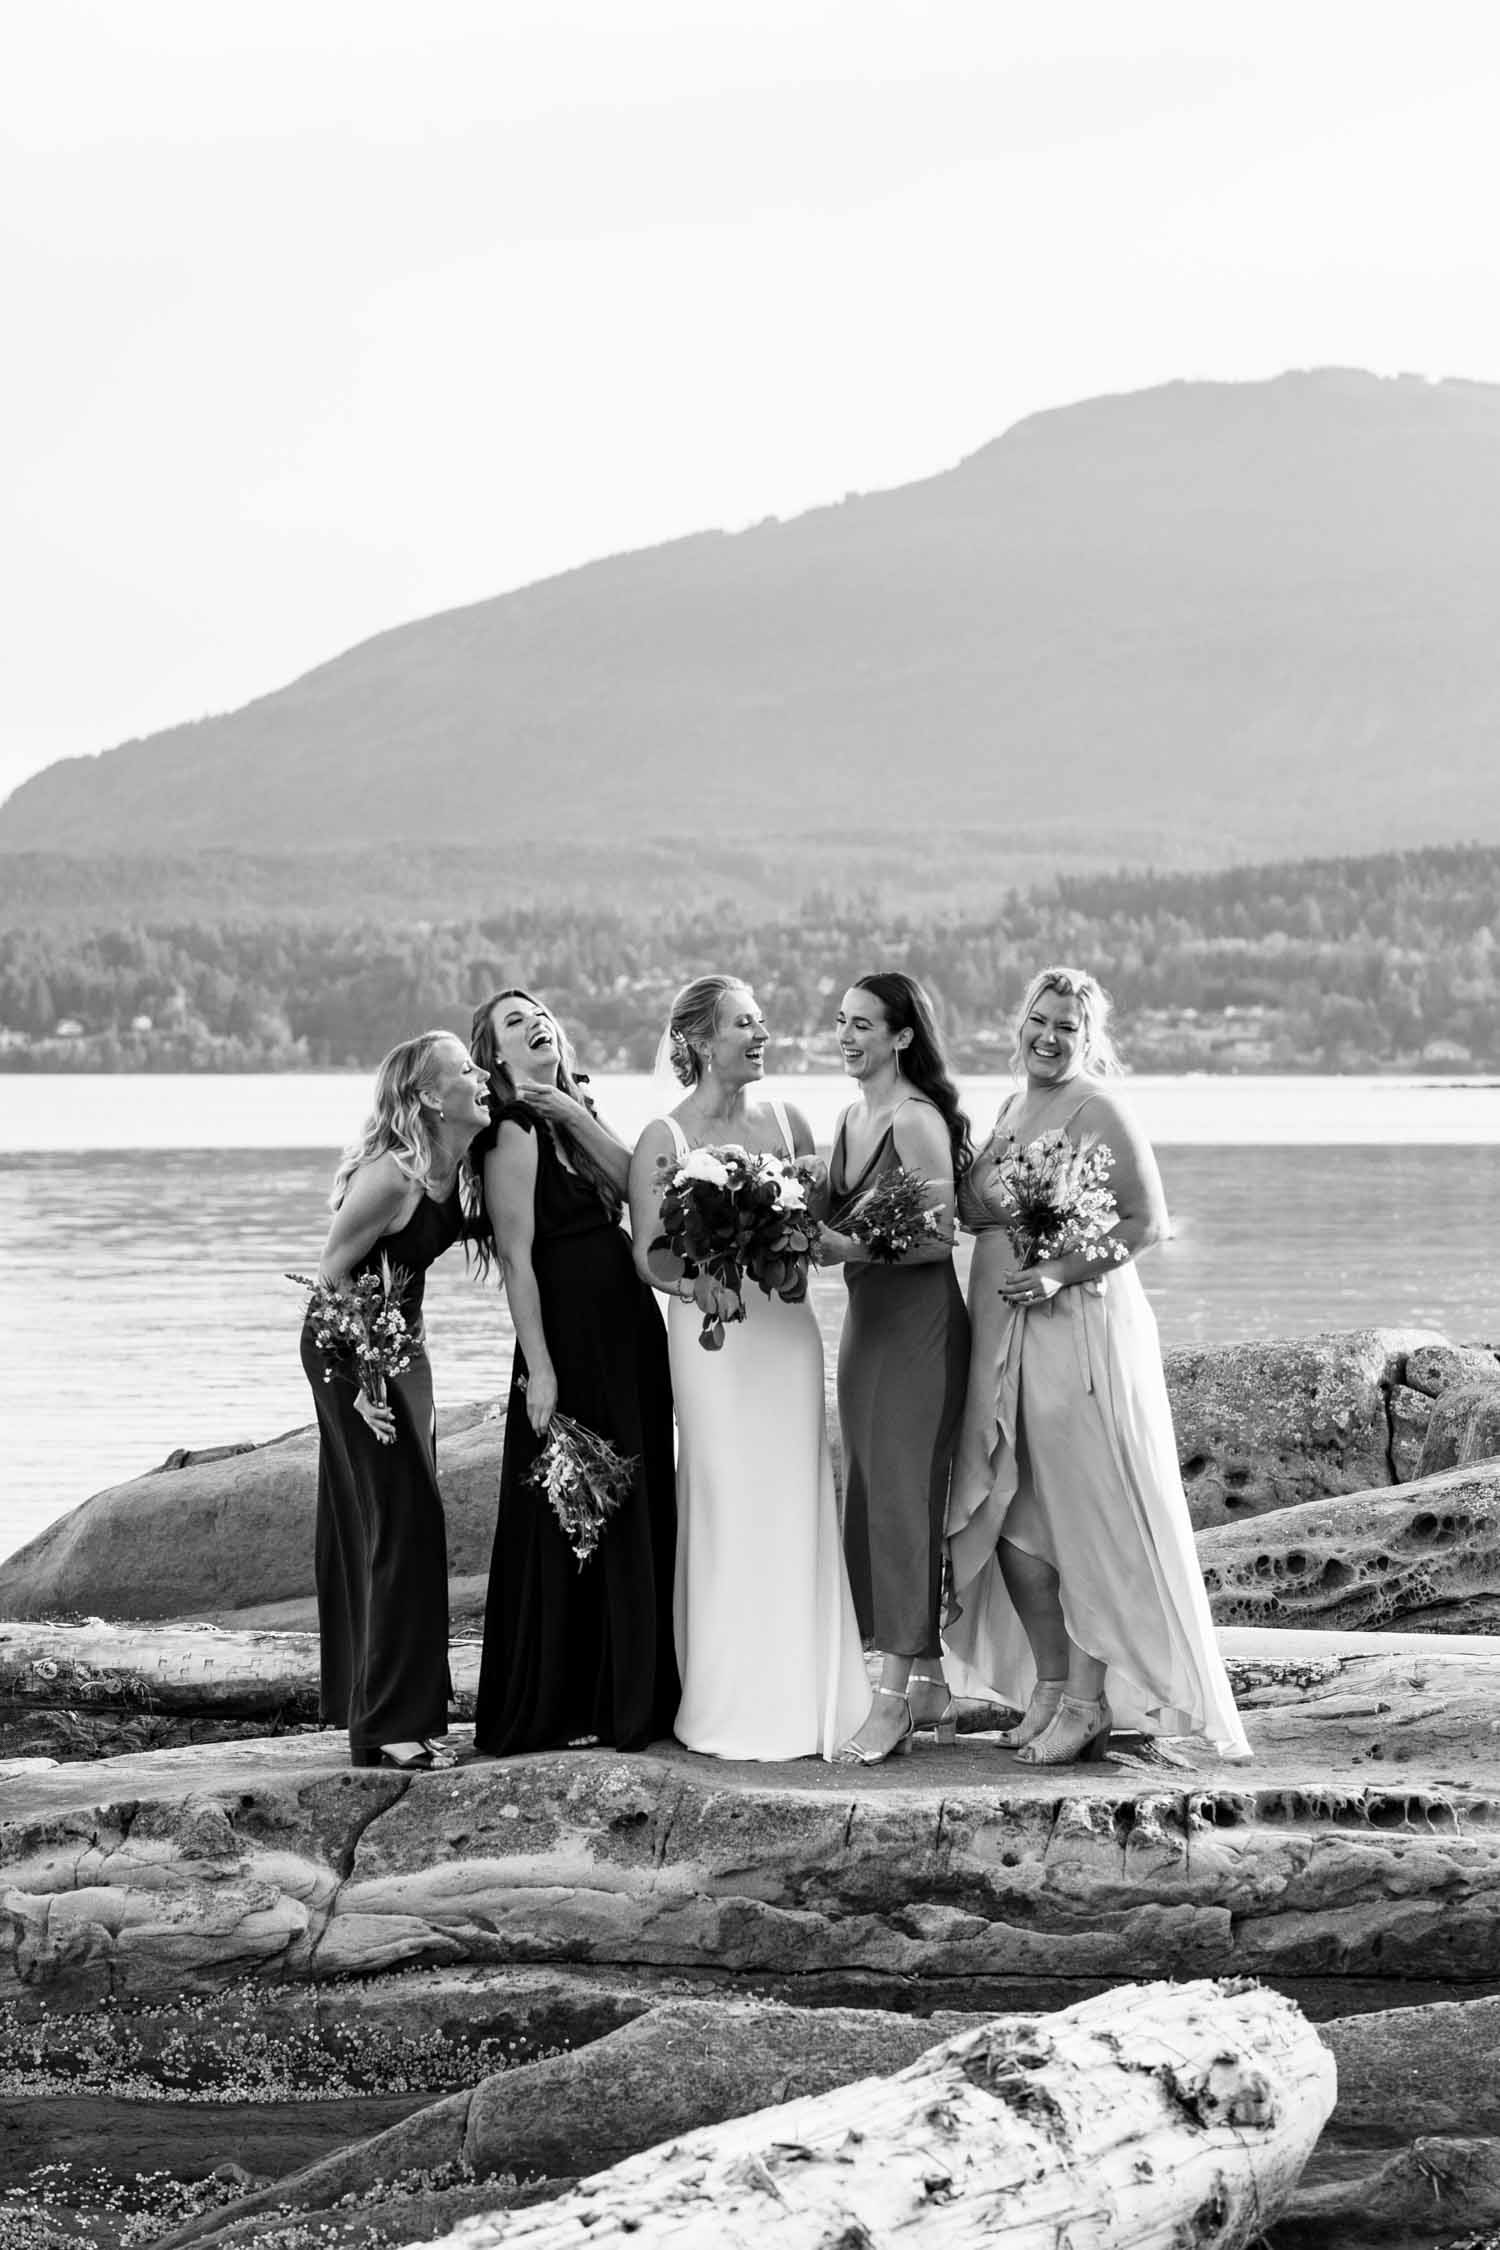 Candid happy photo of bride and bridesmaids laughing on rocks at the seaside at Vancouver Island wedding